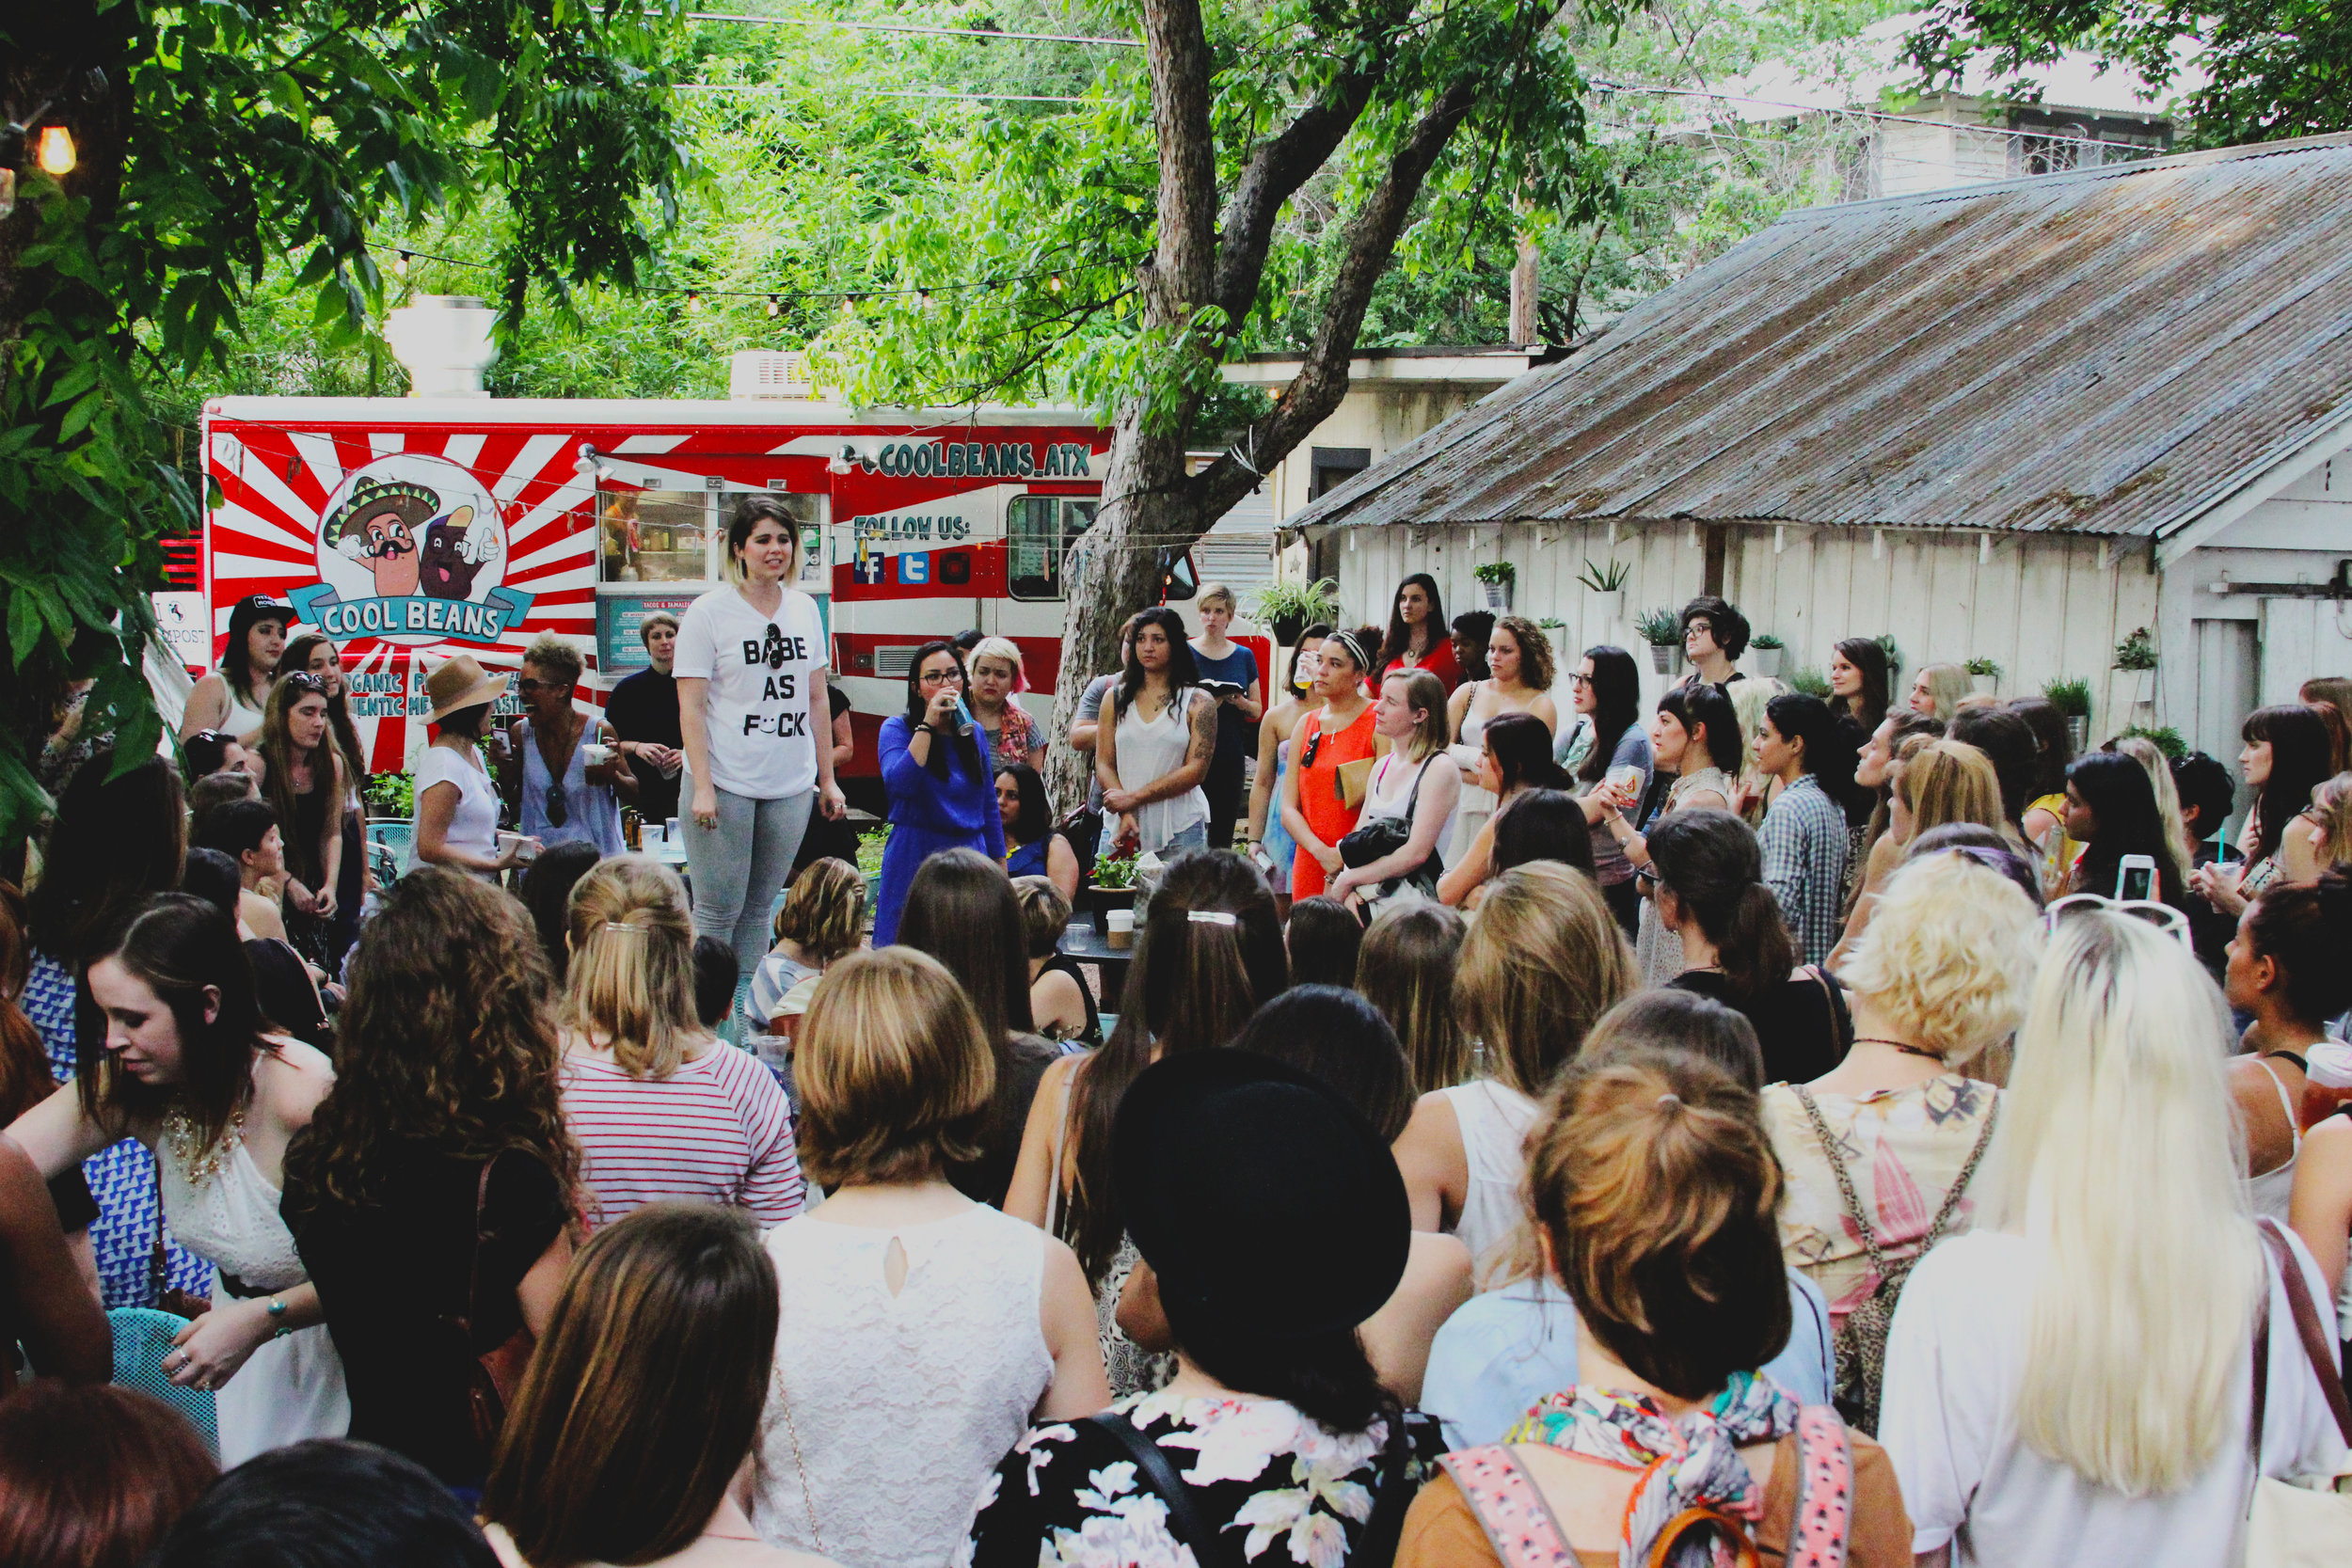 BBATX LAUNCH - Kind of already gushed about this in the text above, but I gotta say—I've been combing through all my old folders of these photos and my heart has been swelling to see how many women I photographed that first year that I didn't know, who are now some of my favorite friends in this city. This has been the best gig over the years because of the kickass people I've met.